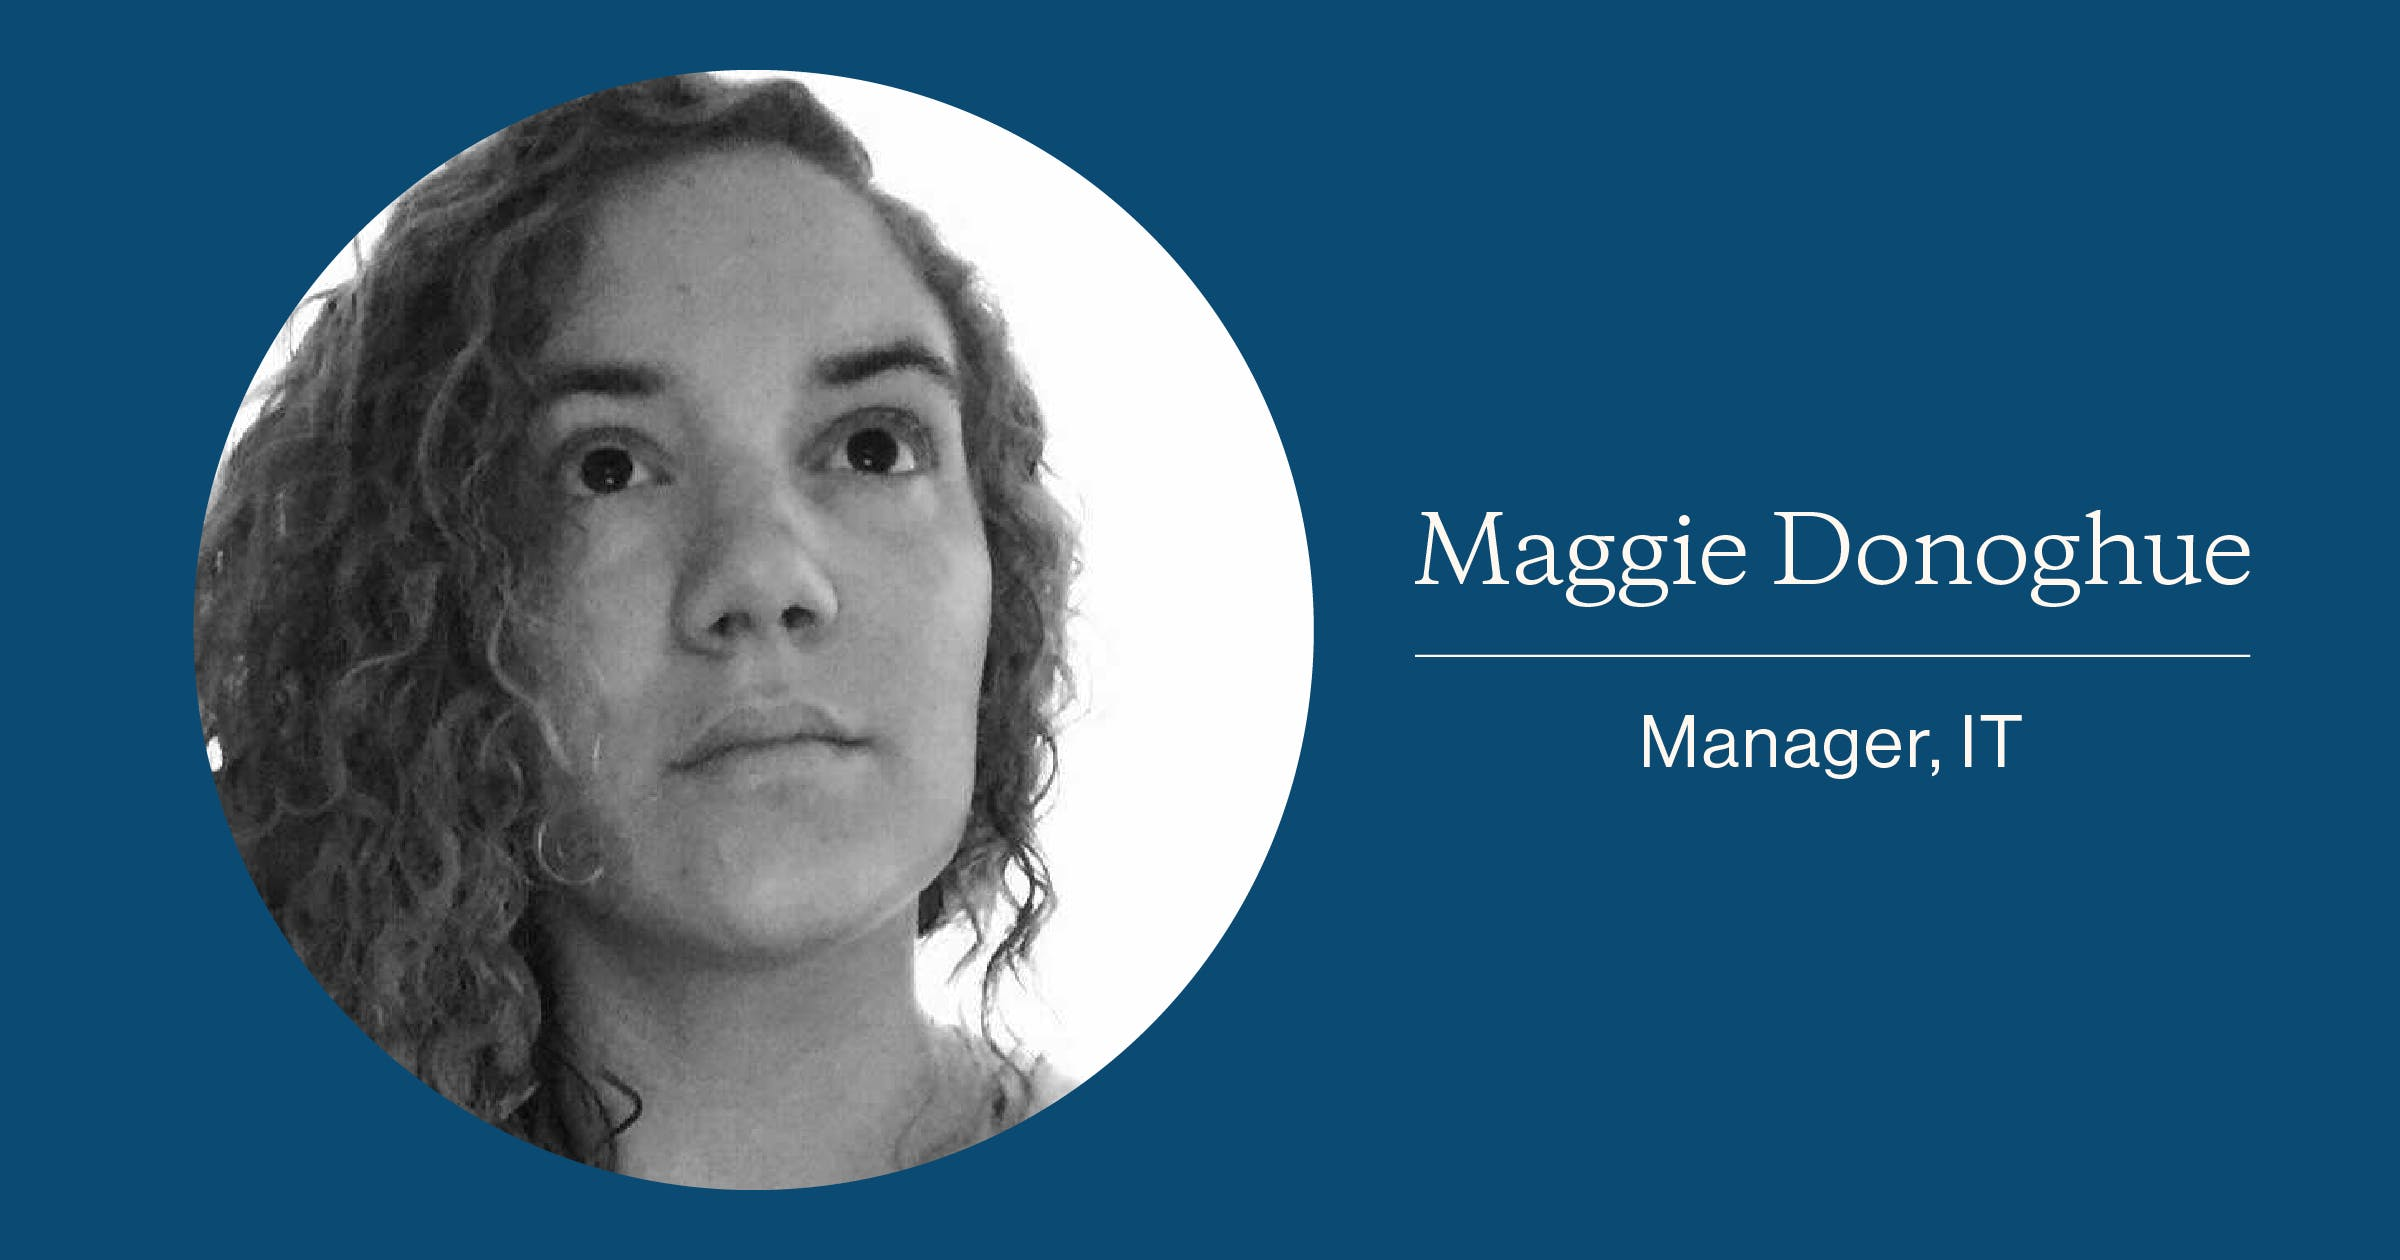 Maggie Donoghue, IT Manager